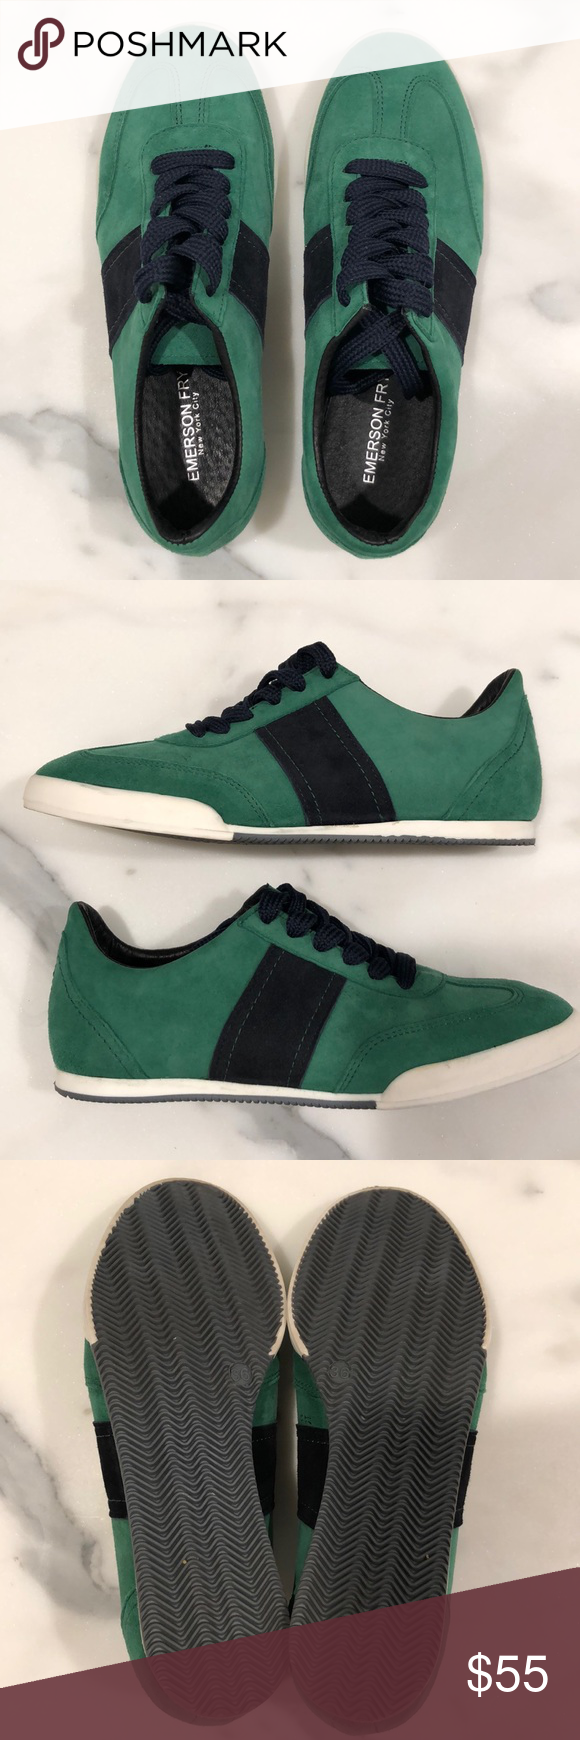 Emerson Fry trainer green / navy suede NWOT sz 36 Beautiful Emerson Fry trainer in green and navy suede leather. Size 36, made in Portugal. These are NWOT. Emerson Fry Shoes Sneakers #emersonfry